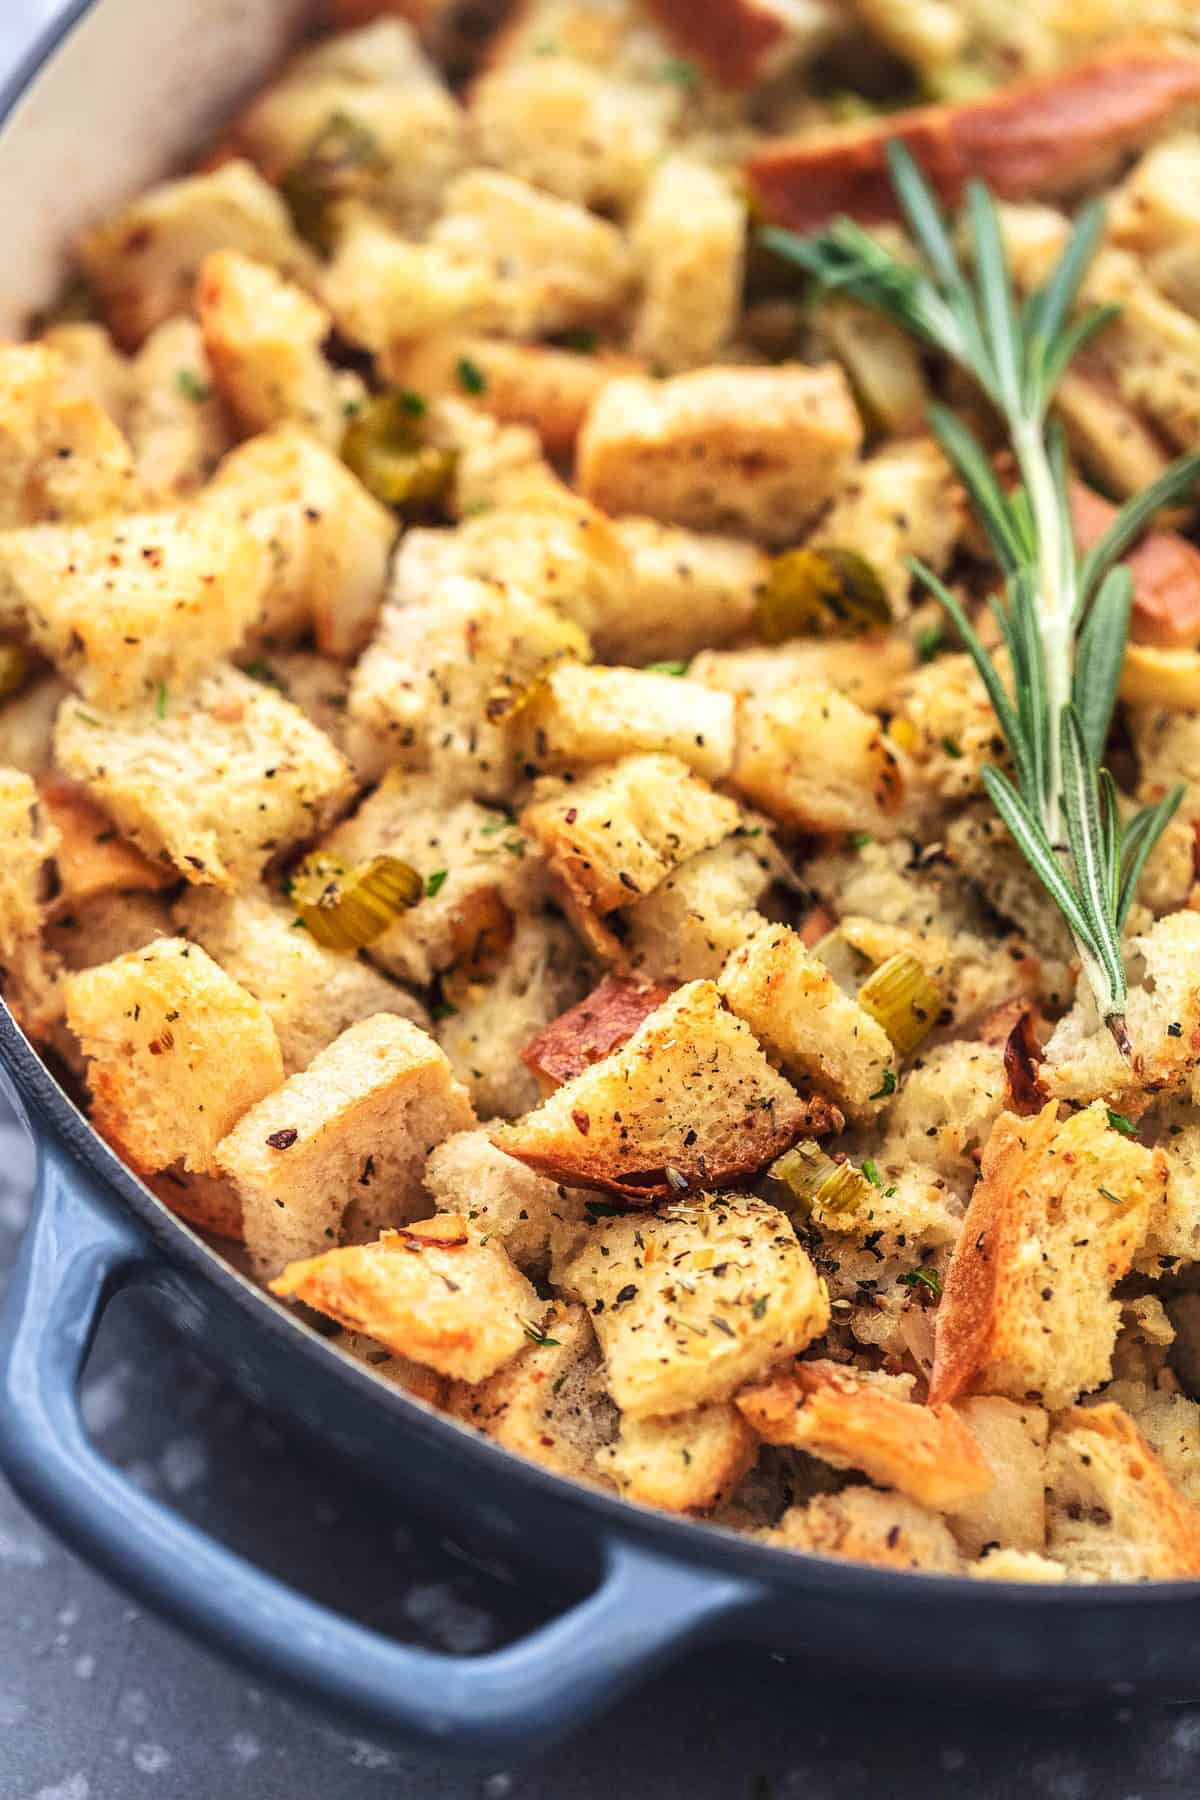 Classic Traditional Homemade Stuffing Recipe - this easy Thanksgiving side dish recipe will be your favorite! | lecremedelacrumb.com